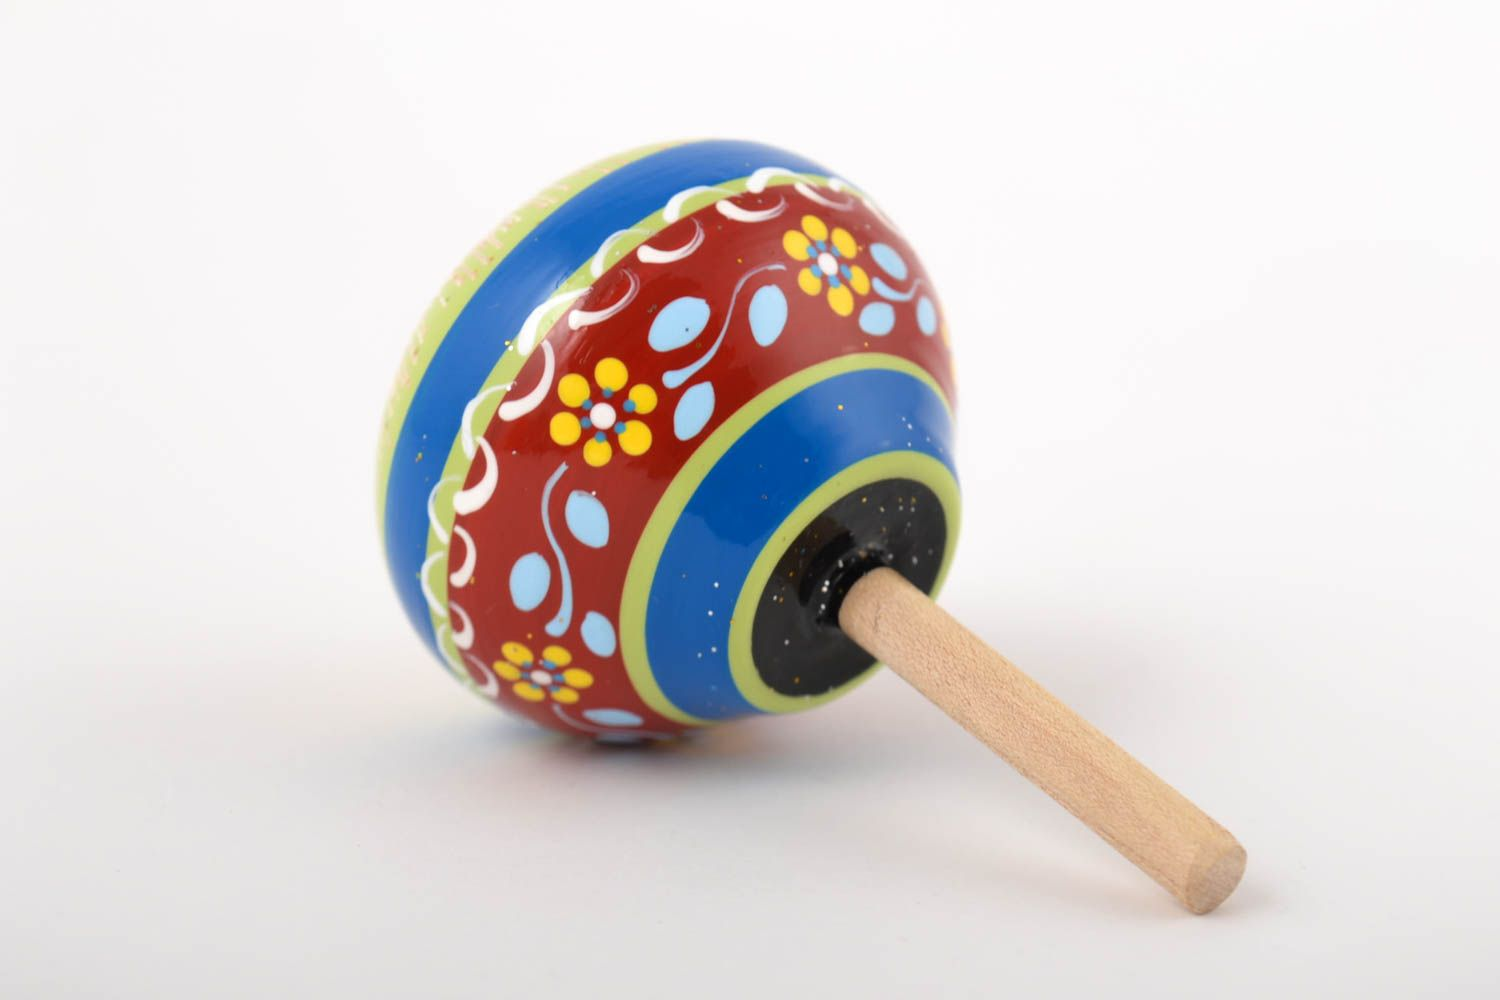 Toys for kids handmade toys spinning tops wooden humming tops gifts for kids - MADEheart.com